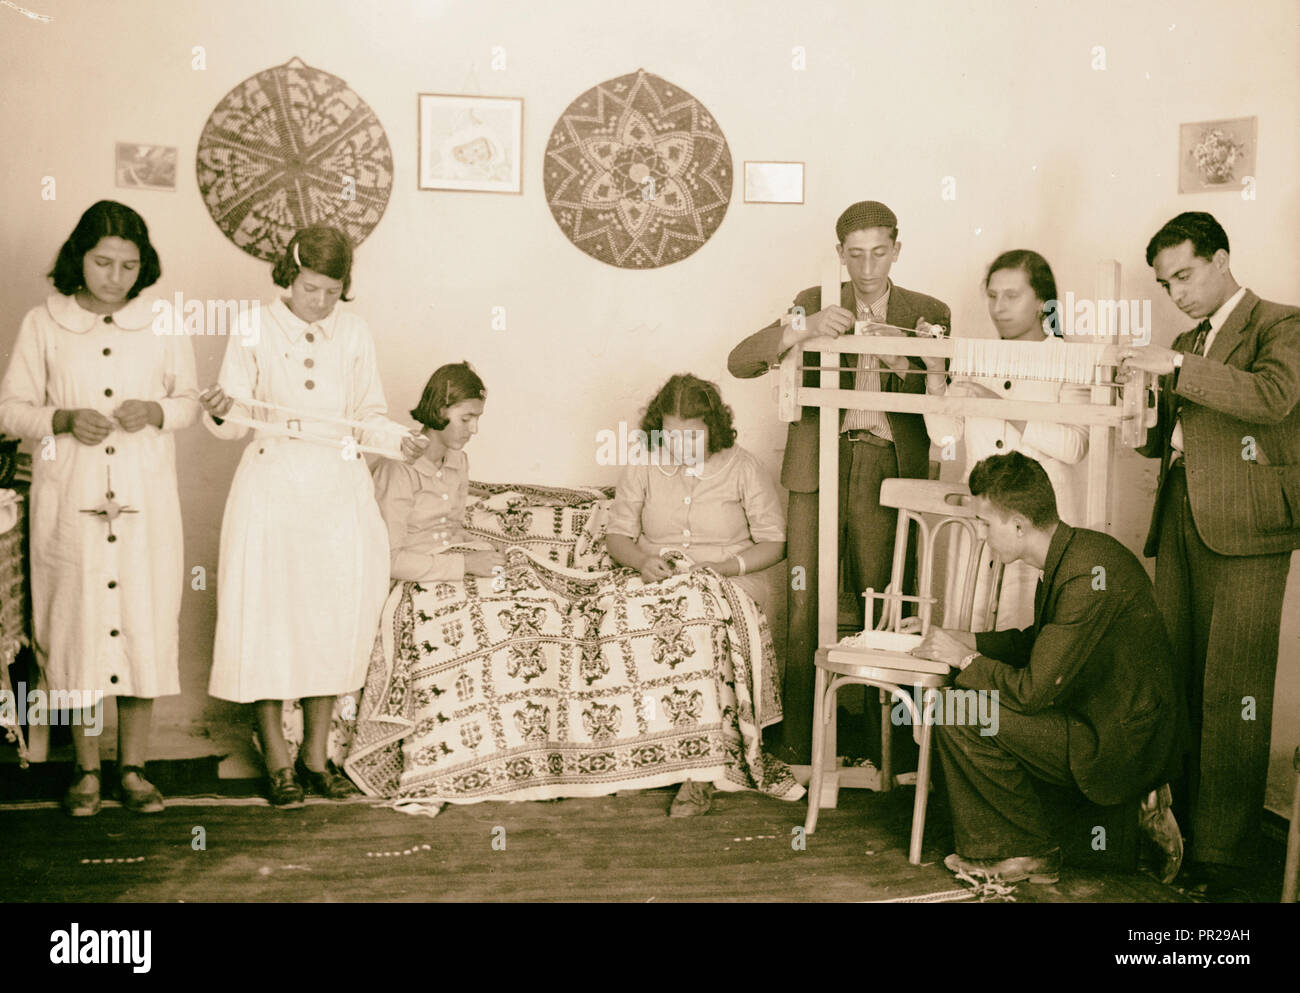 Arab Women's Union of Ramallah Another corner of the work rooms showing young people at work. 1934, West Bank, Rām Allāh - Stock Image